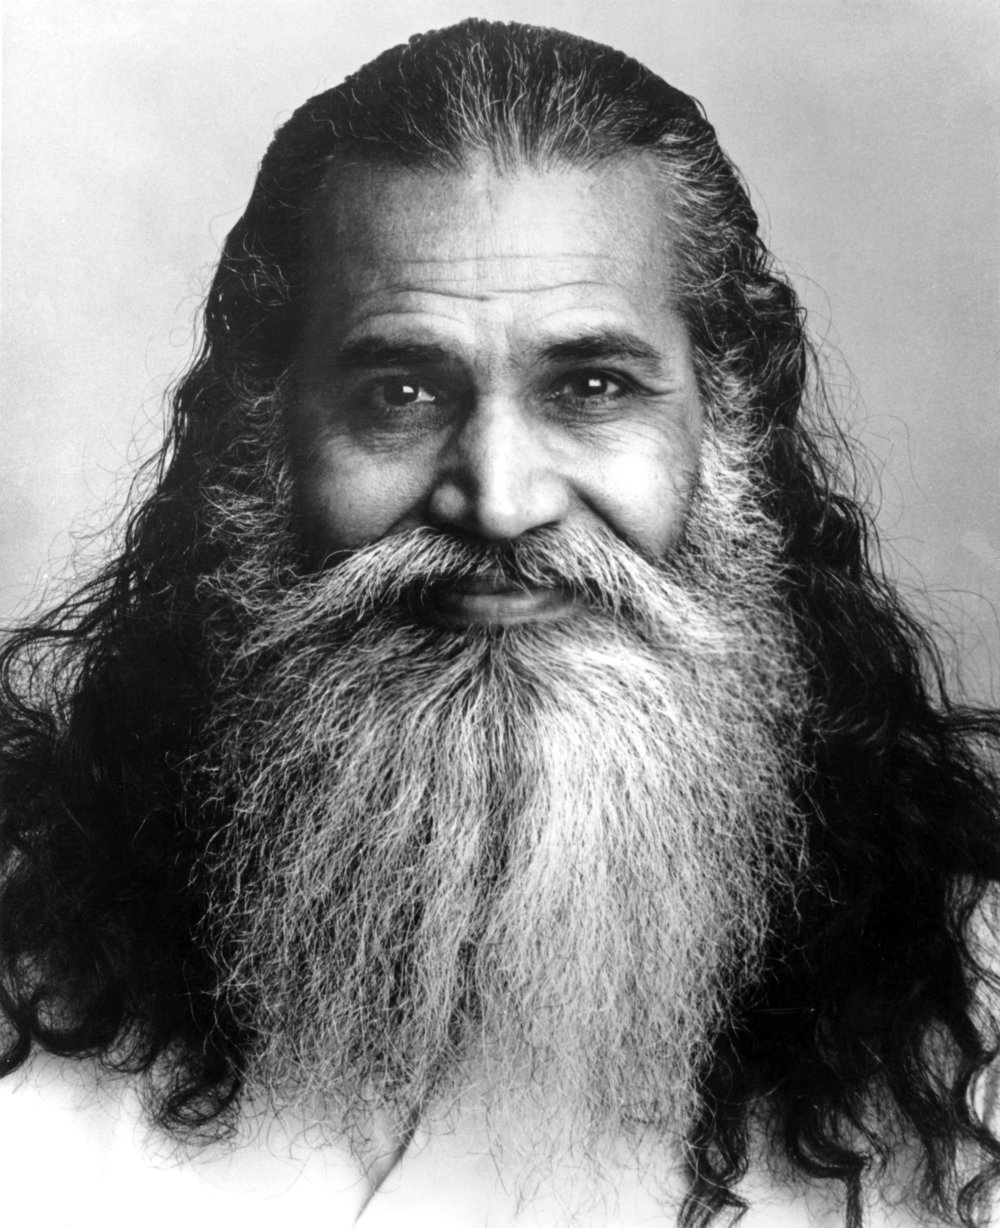 press-Swami-Satchidananda-1969.jpg